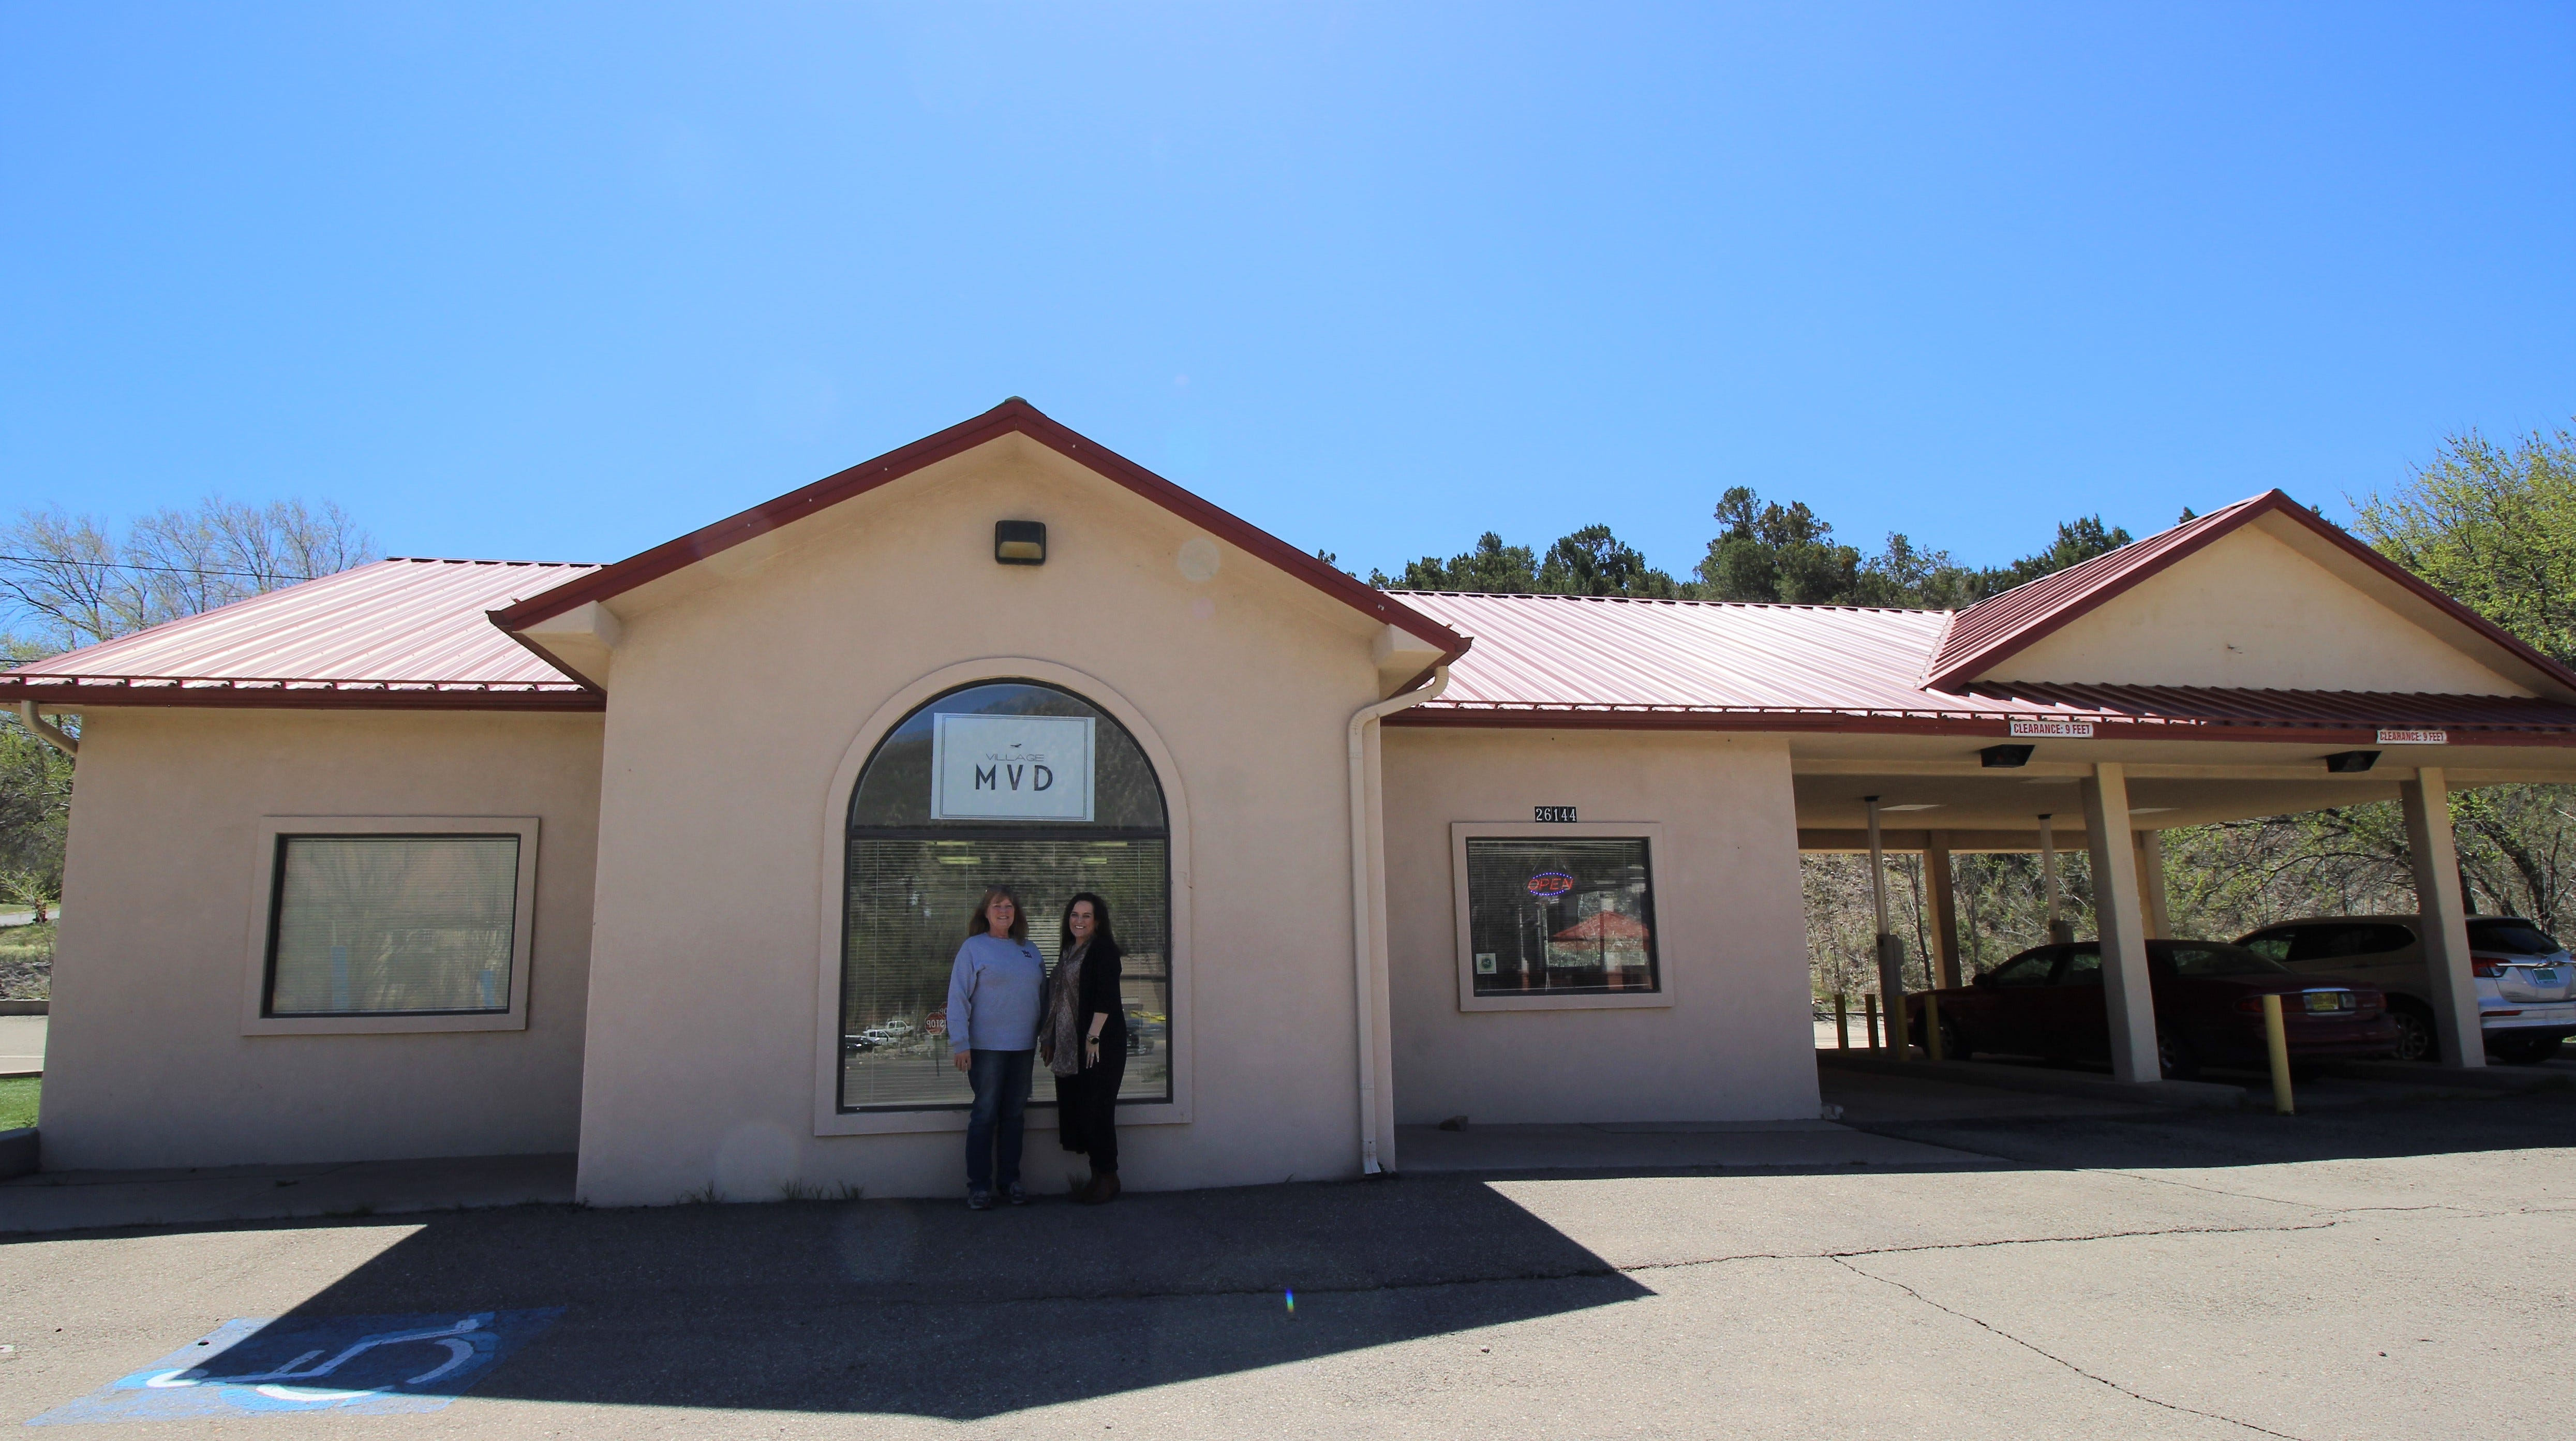 Debbie Heineken, title clerk specialist, and owner Shelly McNutt stand in front of the new Village MVD that opened in March on Highway 70 in Ruidoso Downs.